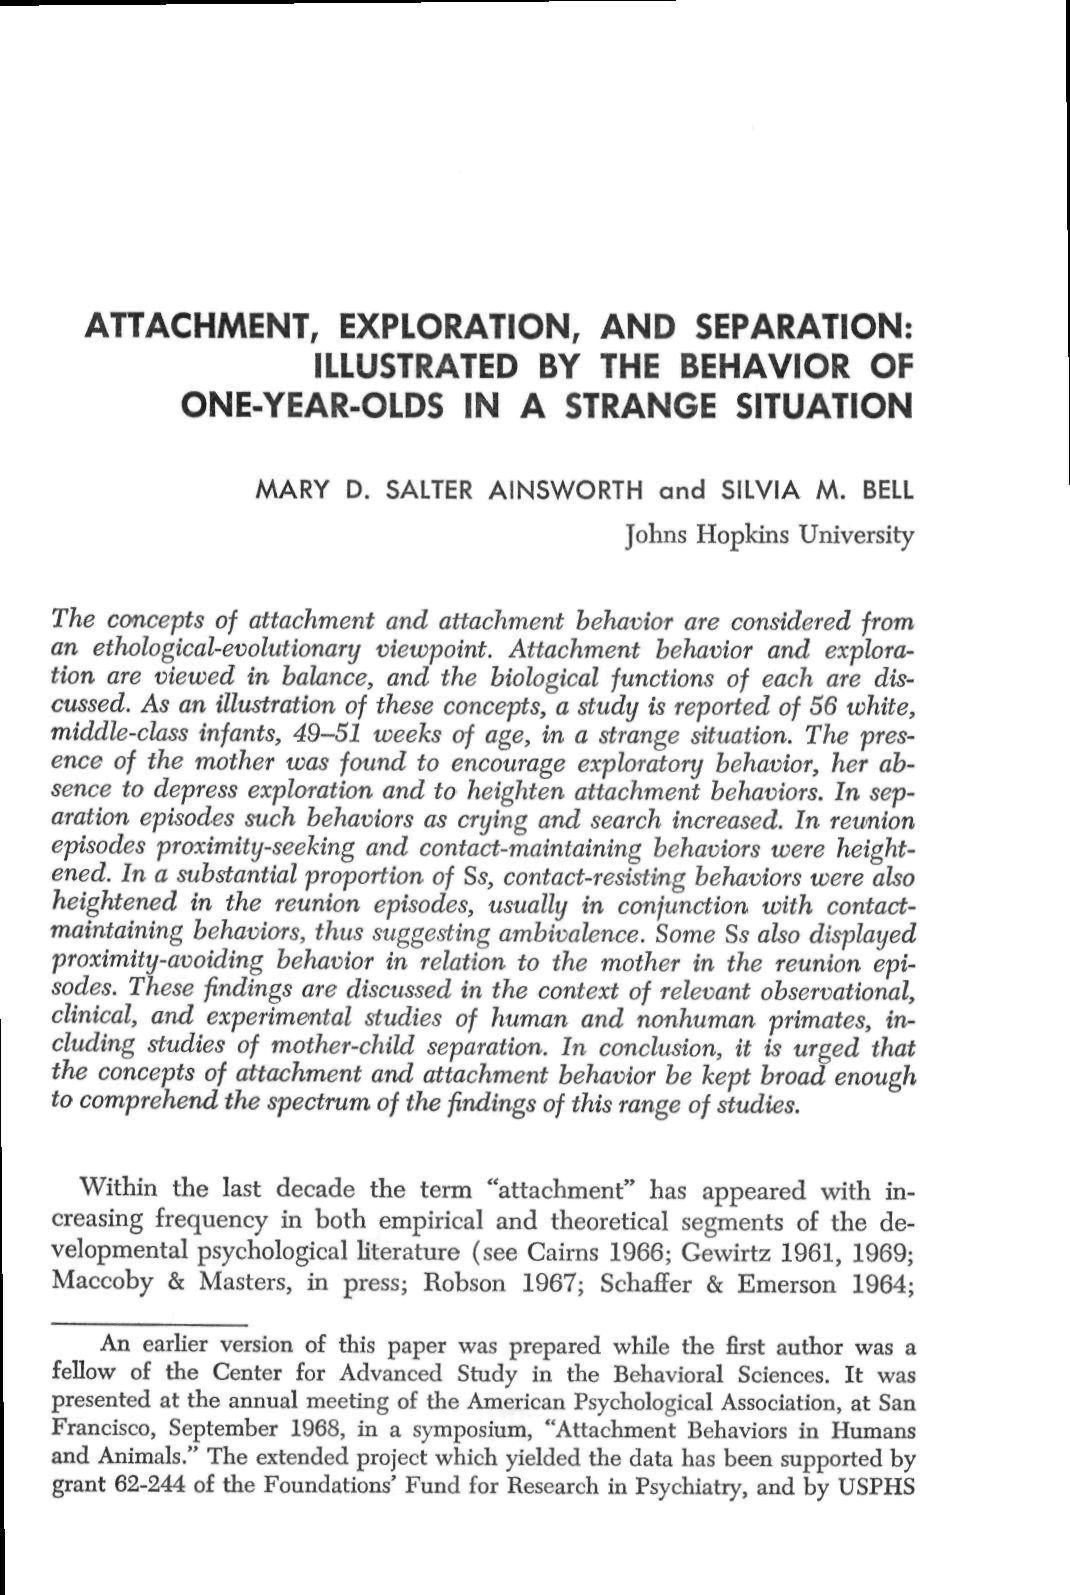 AHACHMENT, EXPLORATION, AND SEPARATION: ILLUSTRATED BY THE BEHAVIOR OF ONE-YEAR-OLDS IN A STRANGE SITUATION MARY D. SALTER AINSWORTH and SILVIA M.